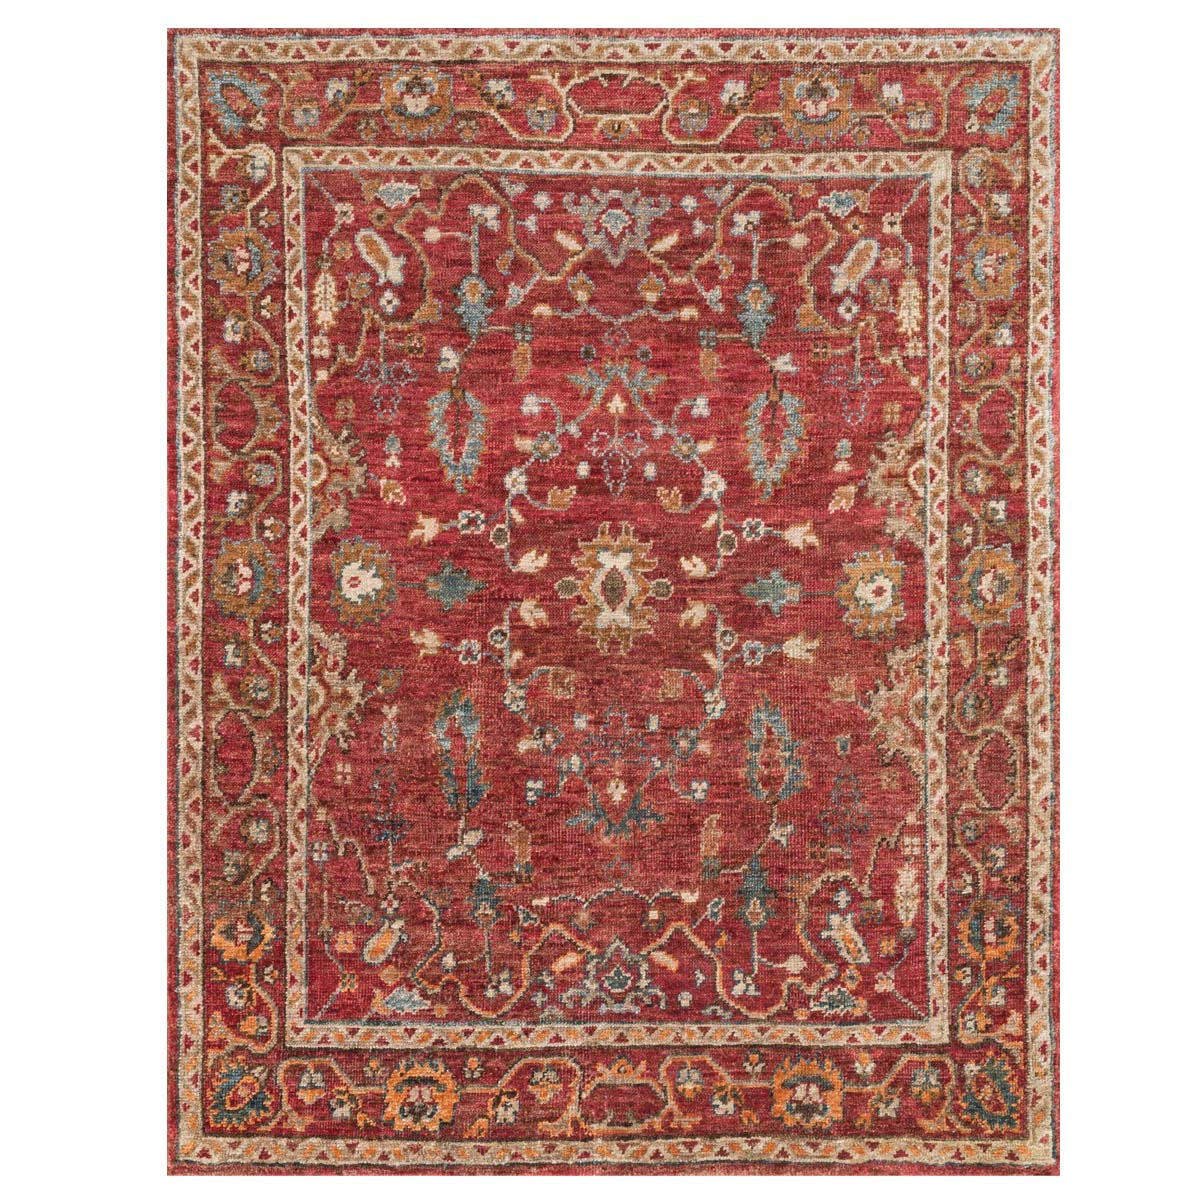 Saloon Red Rug - 8 x 10